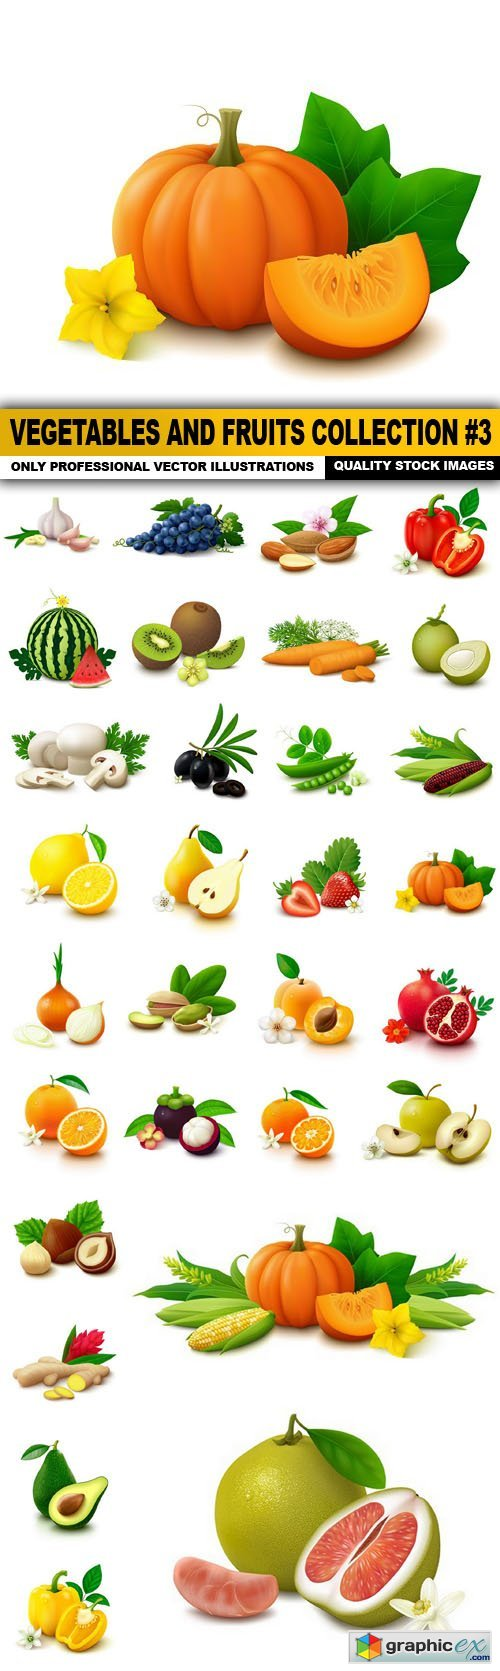 Vegetables And Fruits Collection #3 - 30 Vector